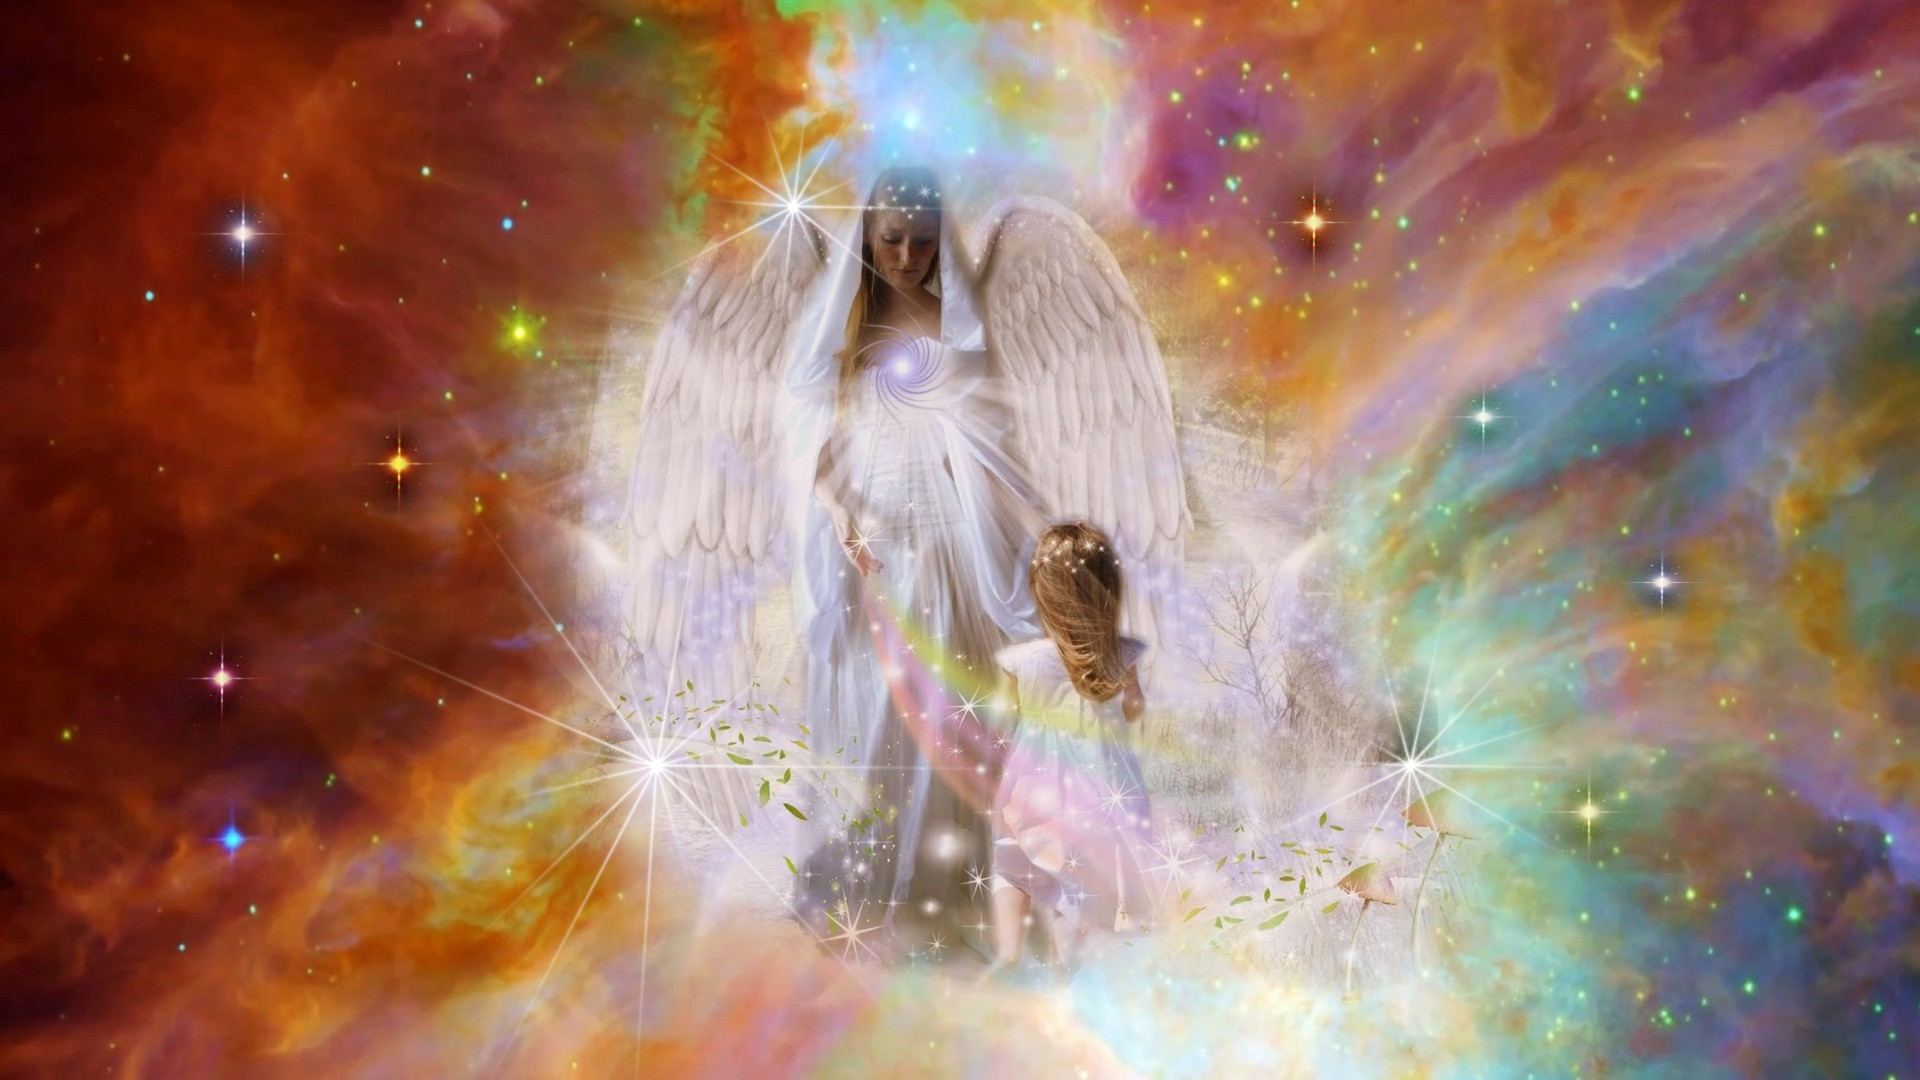 Guardian Angel wallpapers | Guardian Angel stock photos